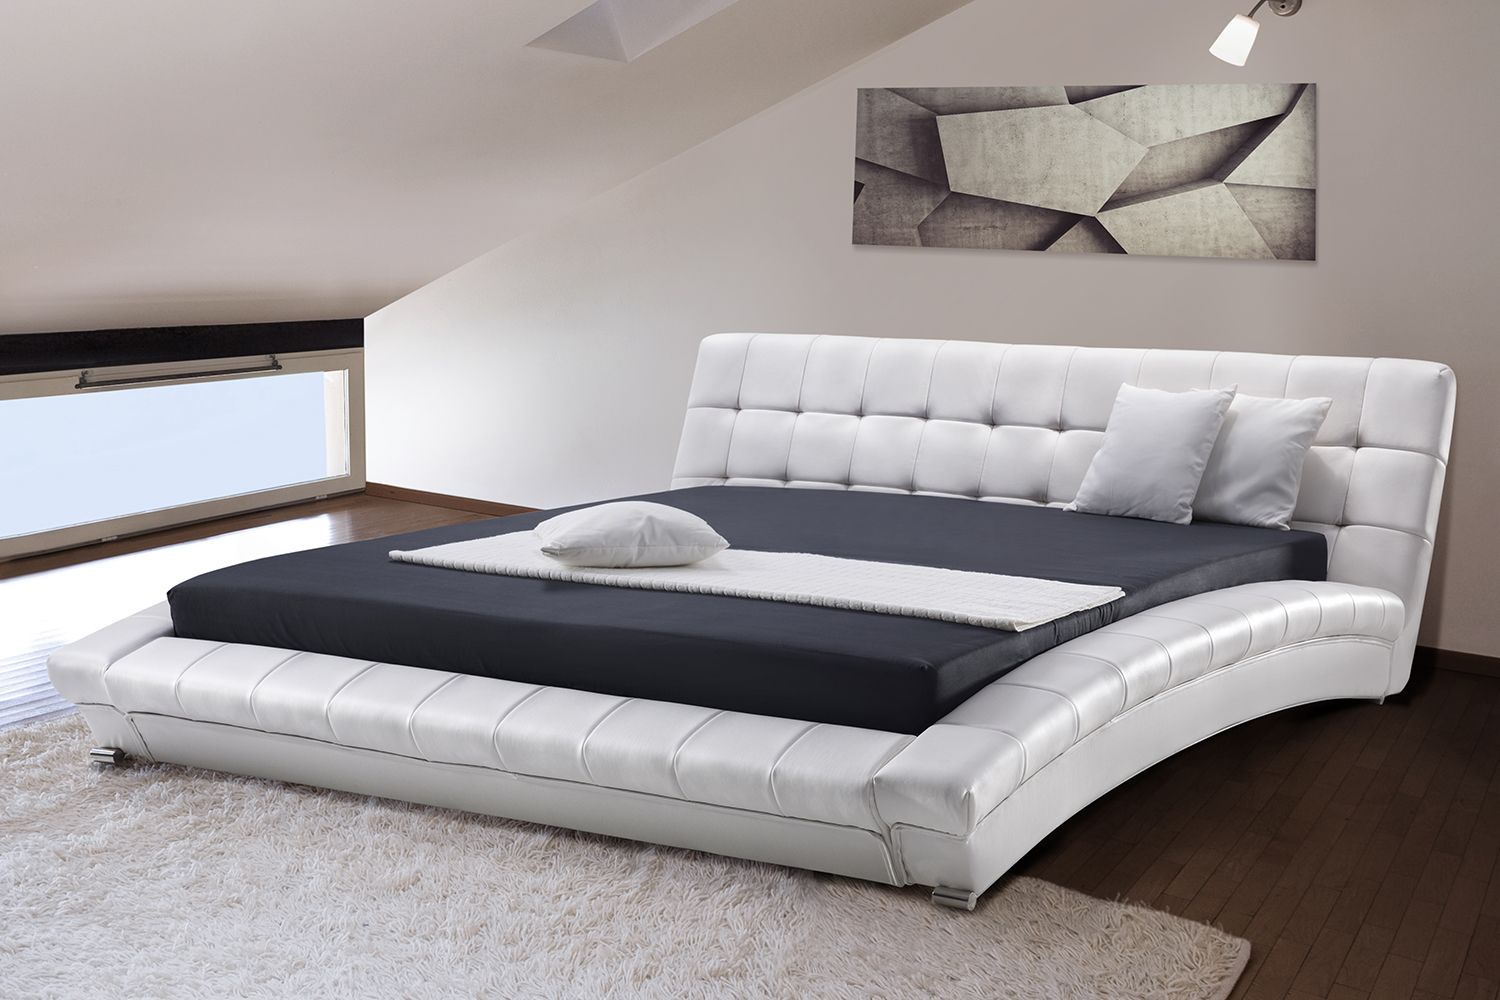 Divan bed furniture king size box spring bedroom for Grey divan king size bed